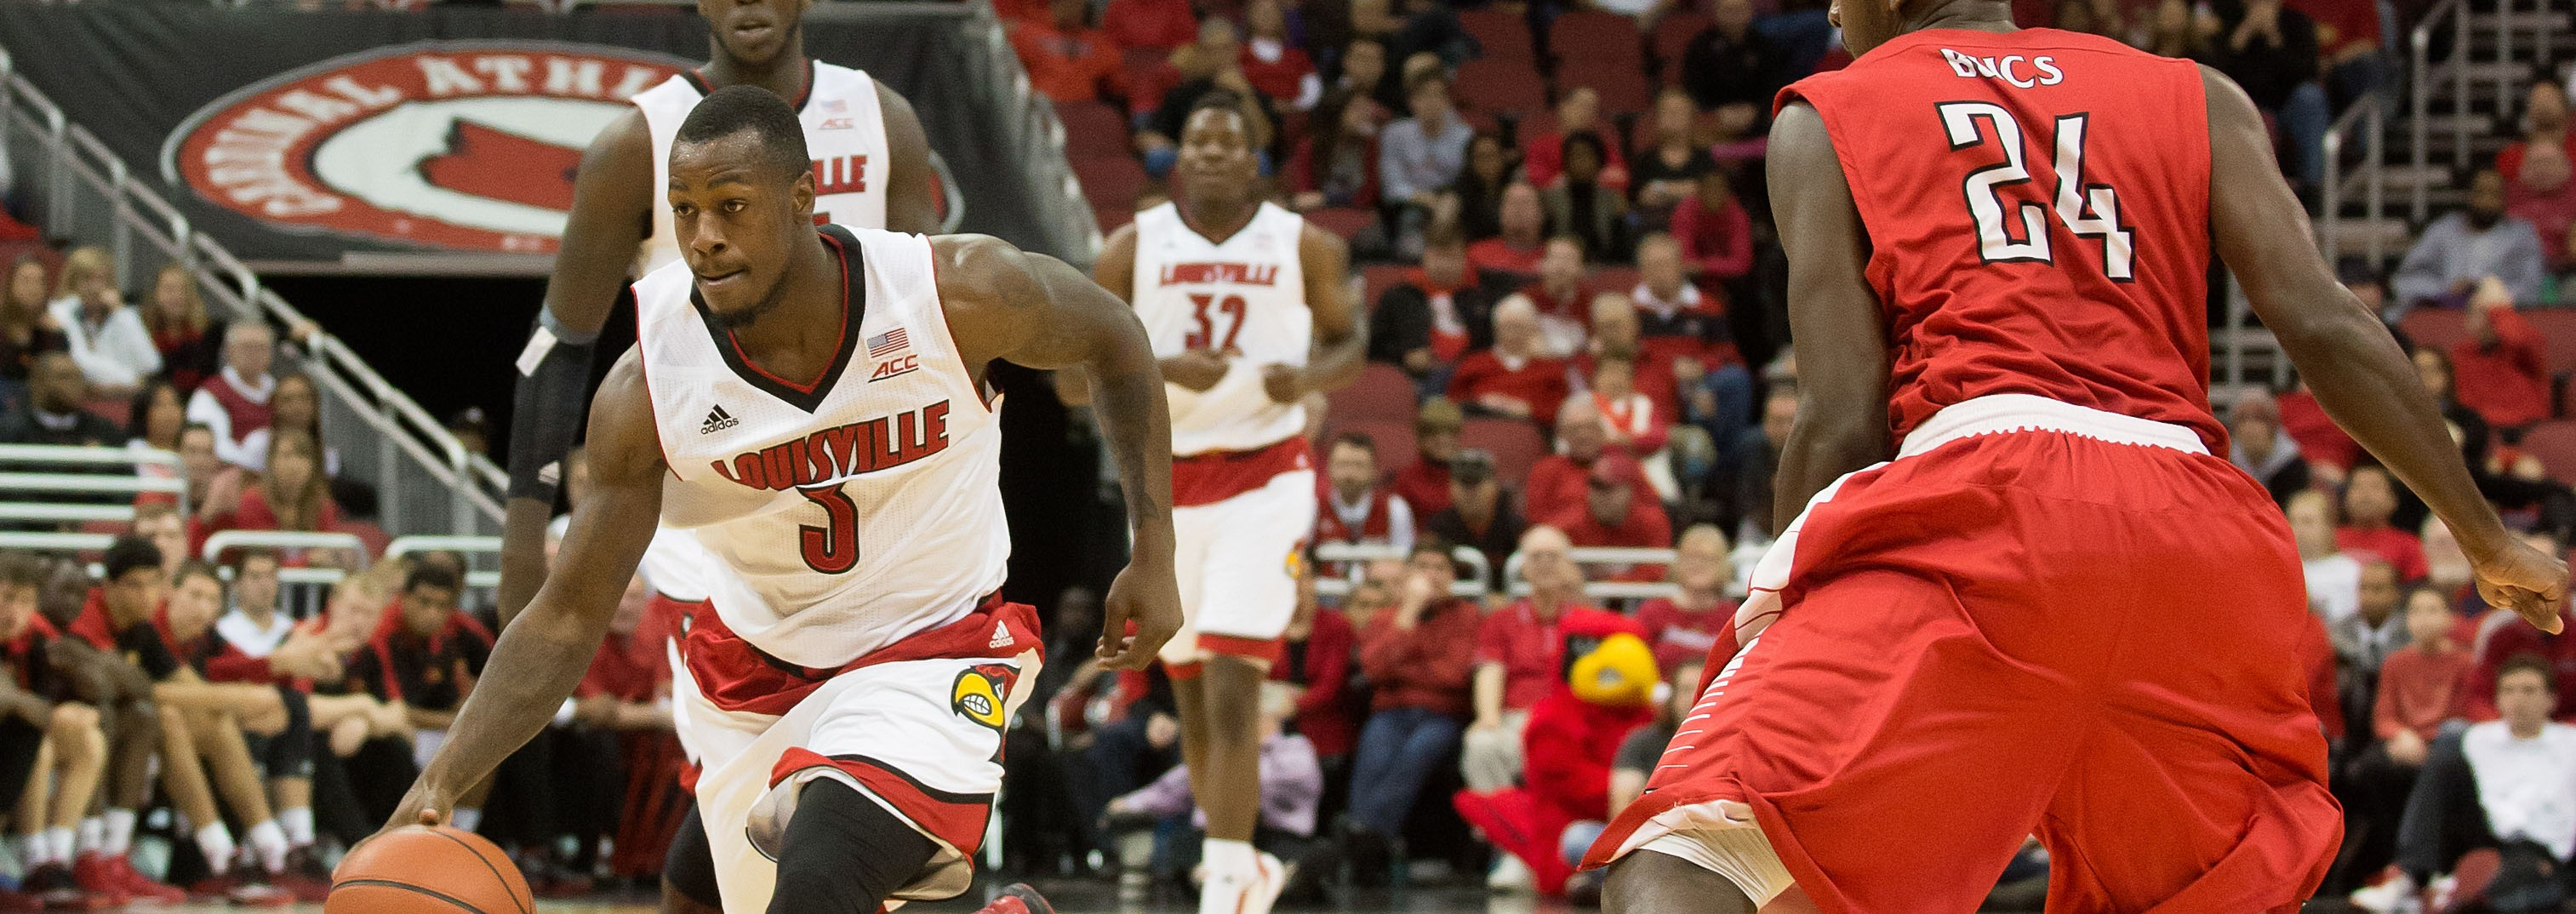 Chris Jones Louisville vs. Barry 11-1-2014 Photo by Adam Creech Fitted